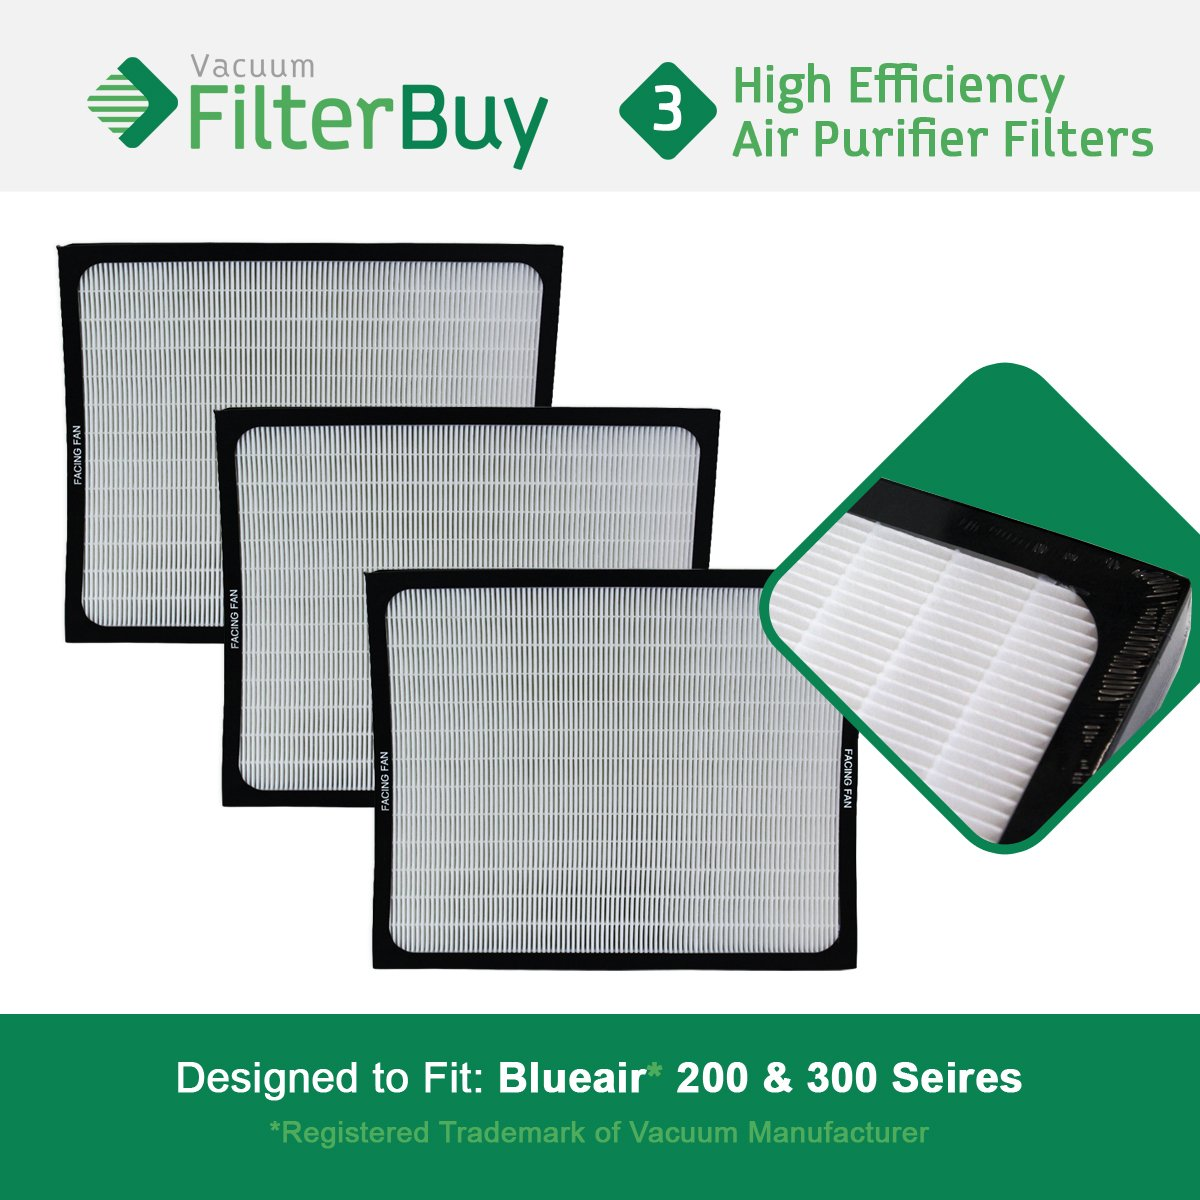 3 FilterBuy filters designed to fit Blueair 200 & 300 Series Air Purifiers.